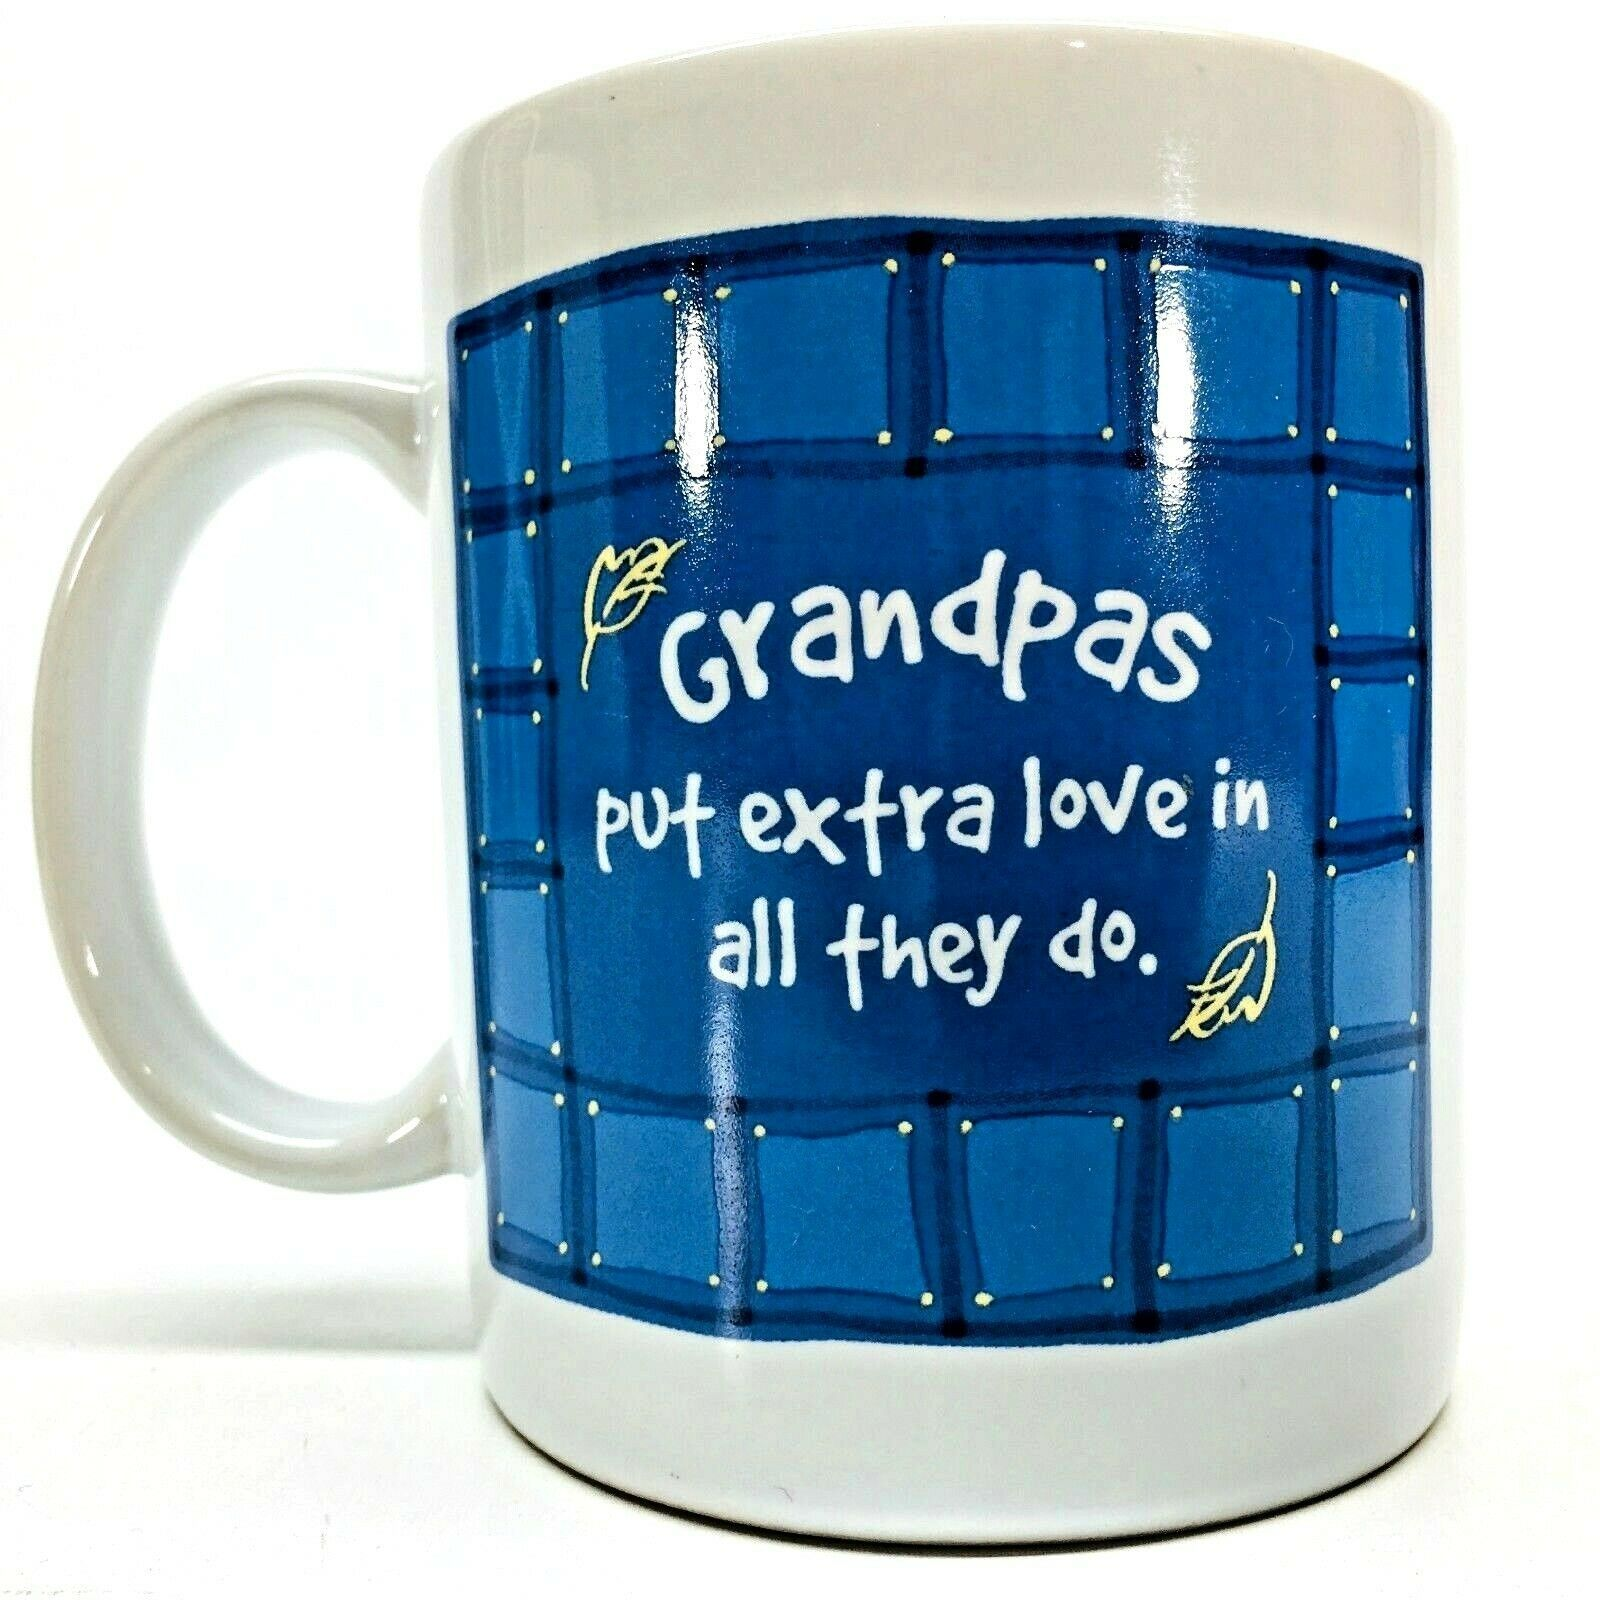 Primary image for Hallmark Cards Grandpas Put Extra Love In All They Do Coffee Mug Cup Love Gift